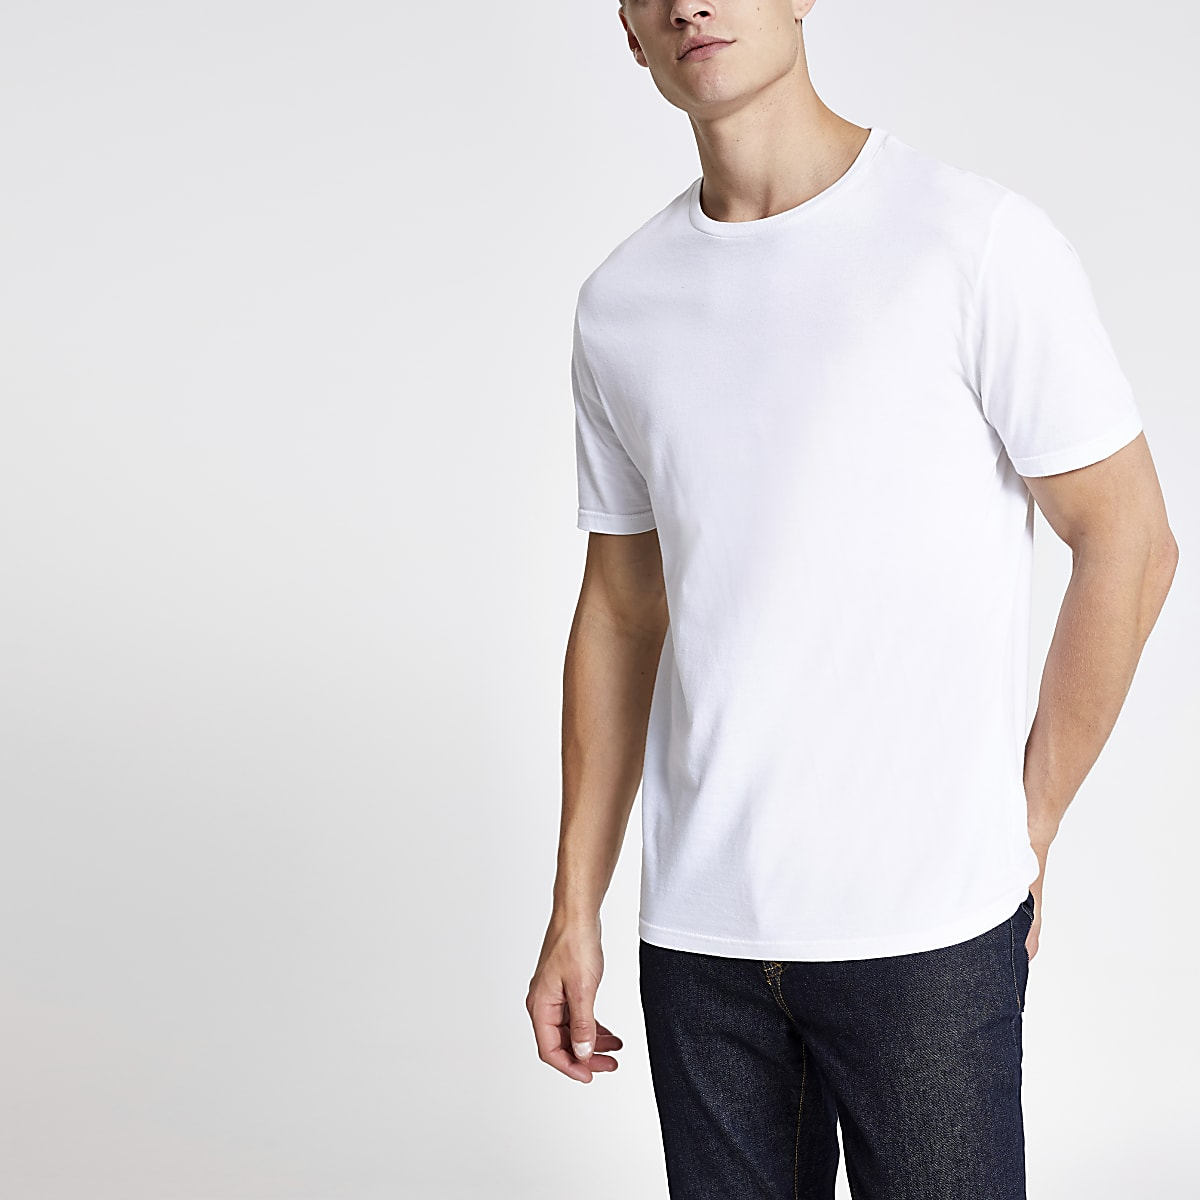 white slim fit crew neck t shirt t shirts t shirts. Black Bedroom Furniture Sets. Home Design Ideas